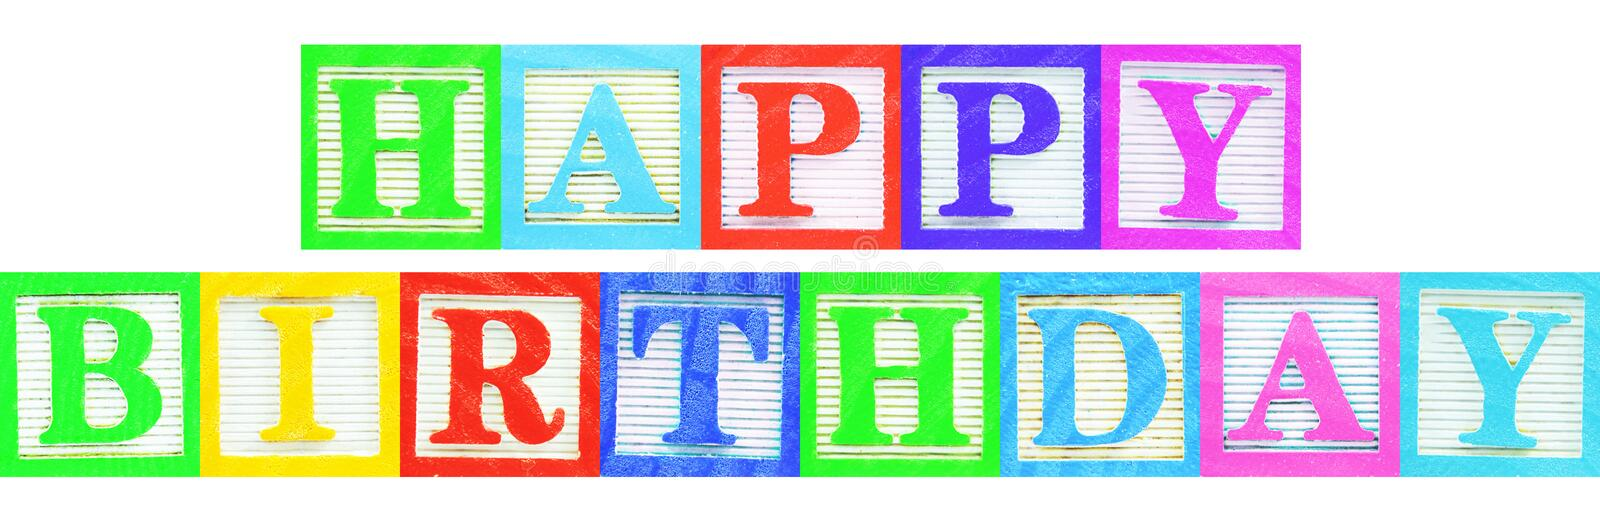 Happy birthday. Colorful happy birthday message isolated against white royalty free stock photos